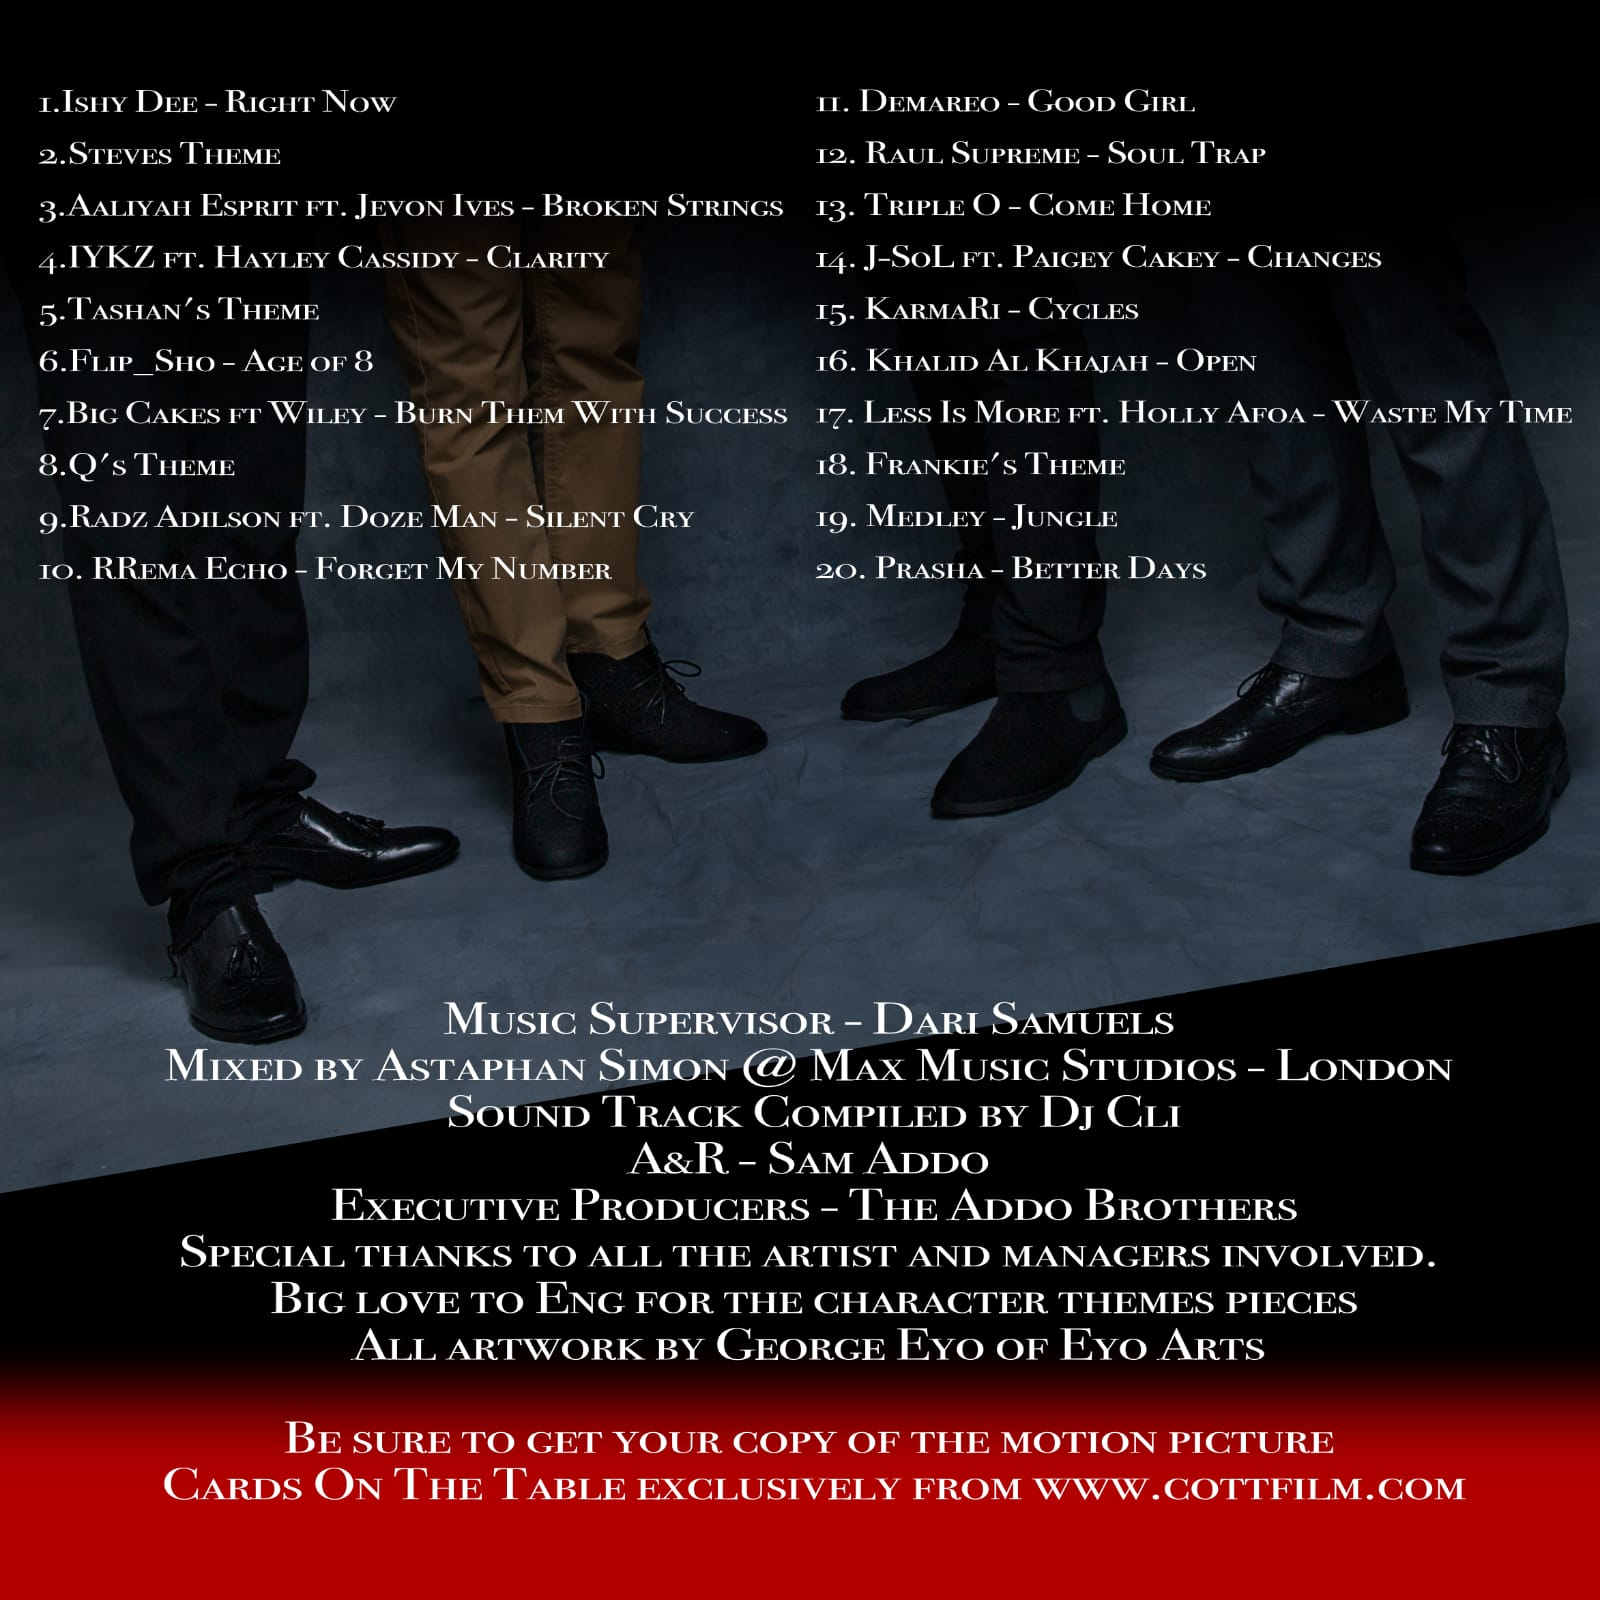 Soundtrack Album - Track List